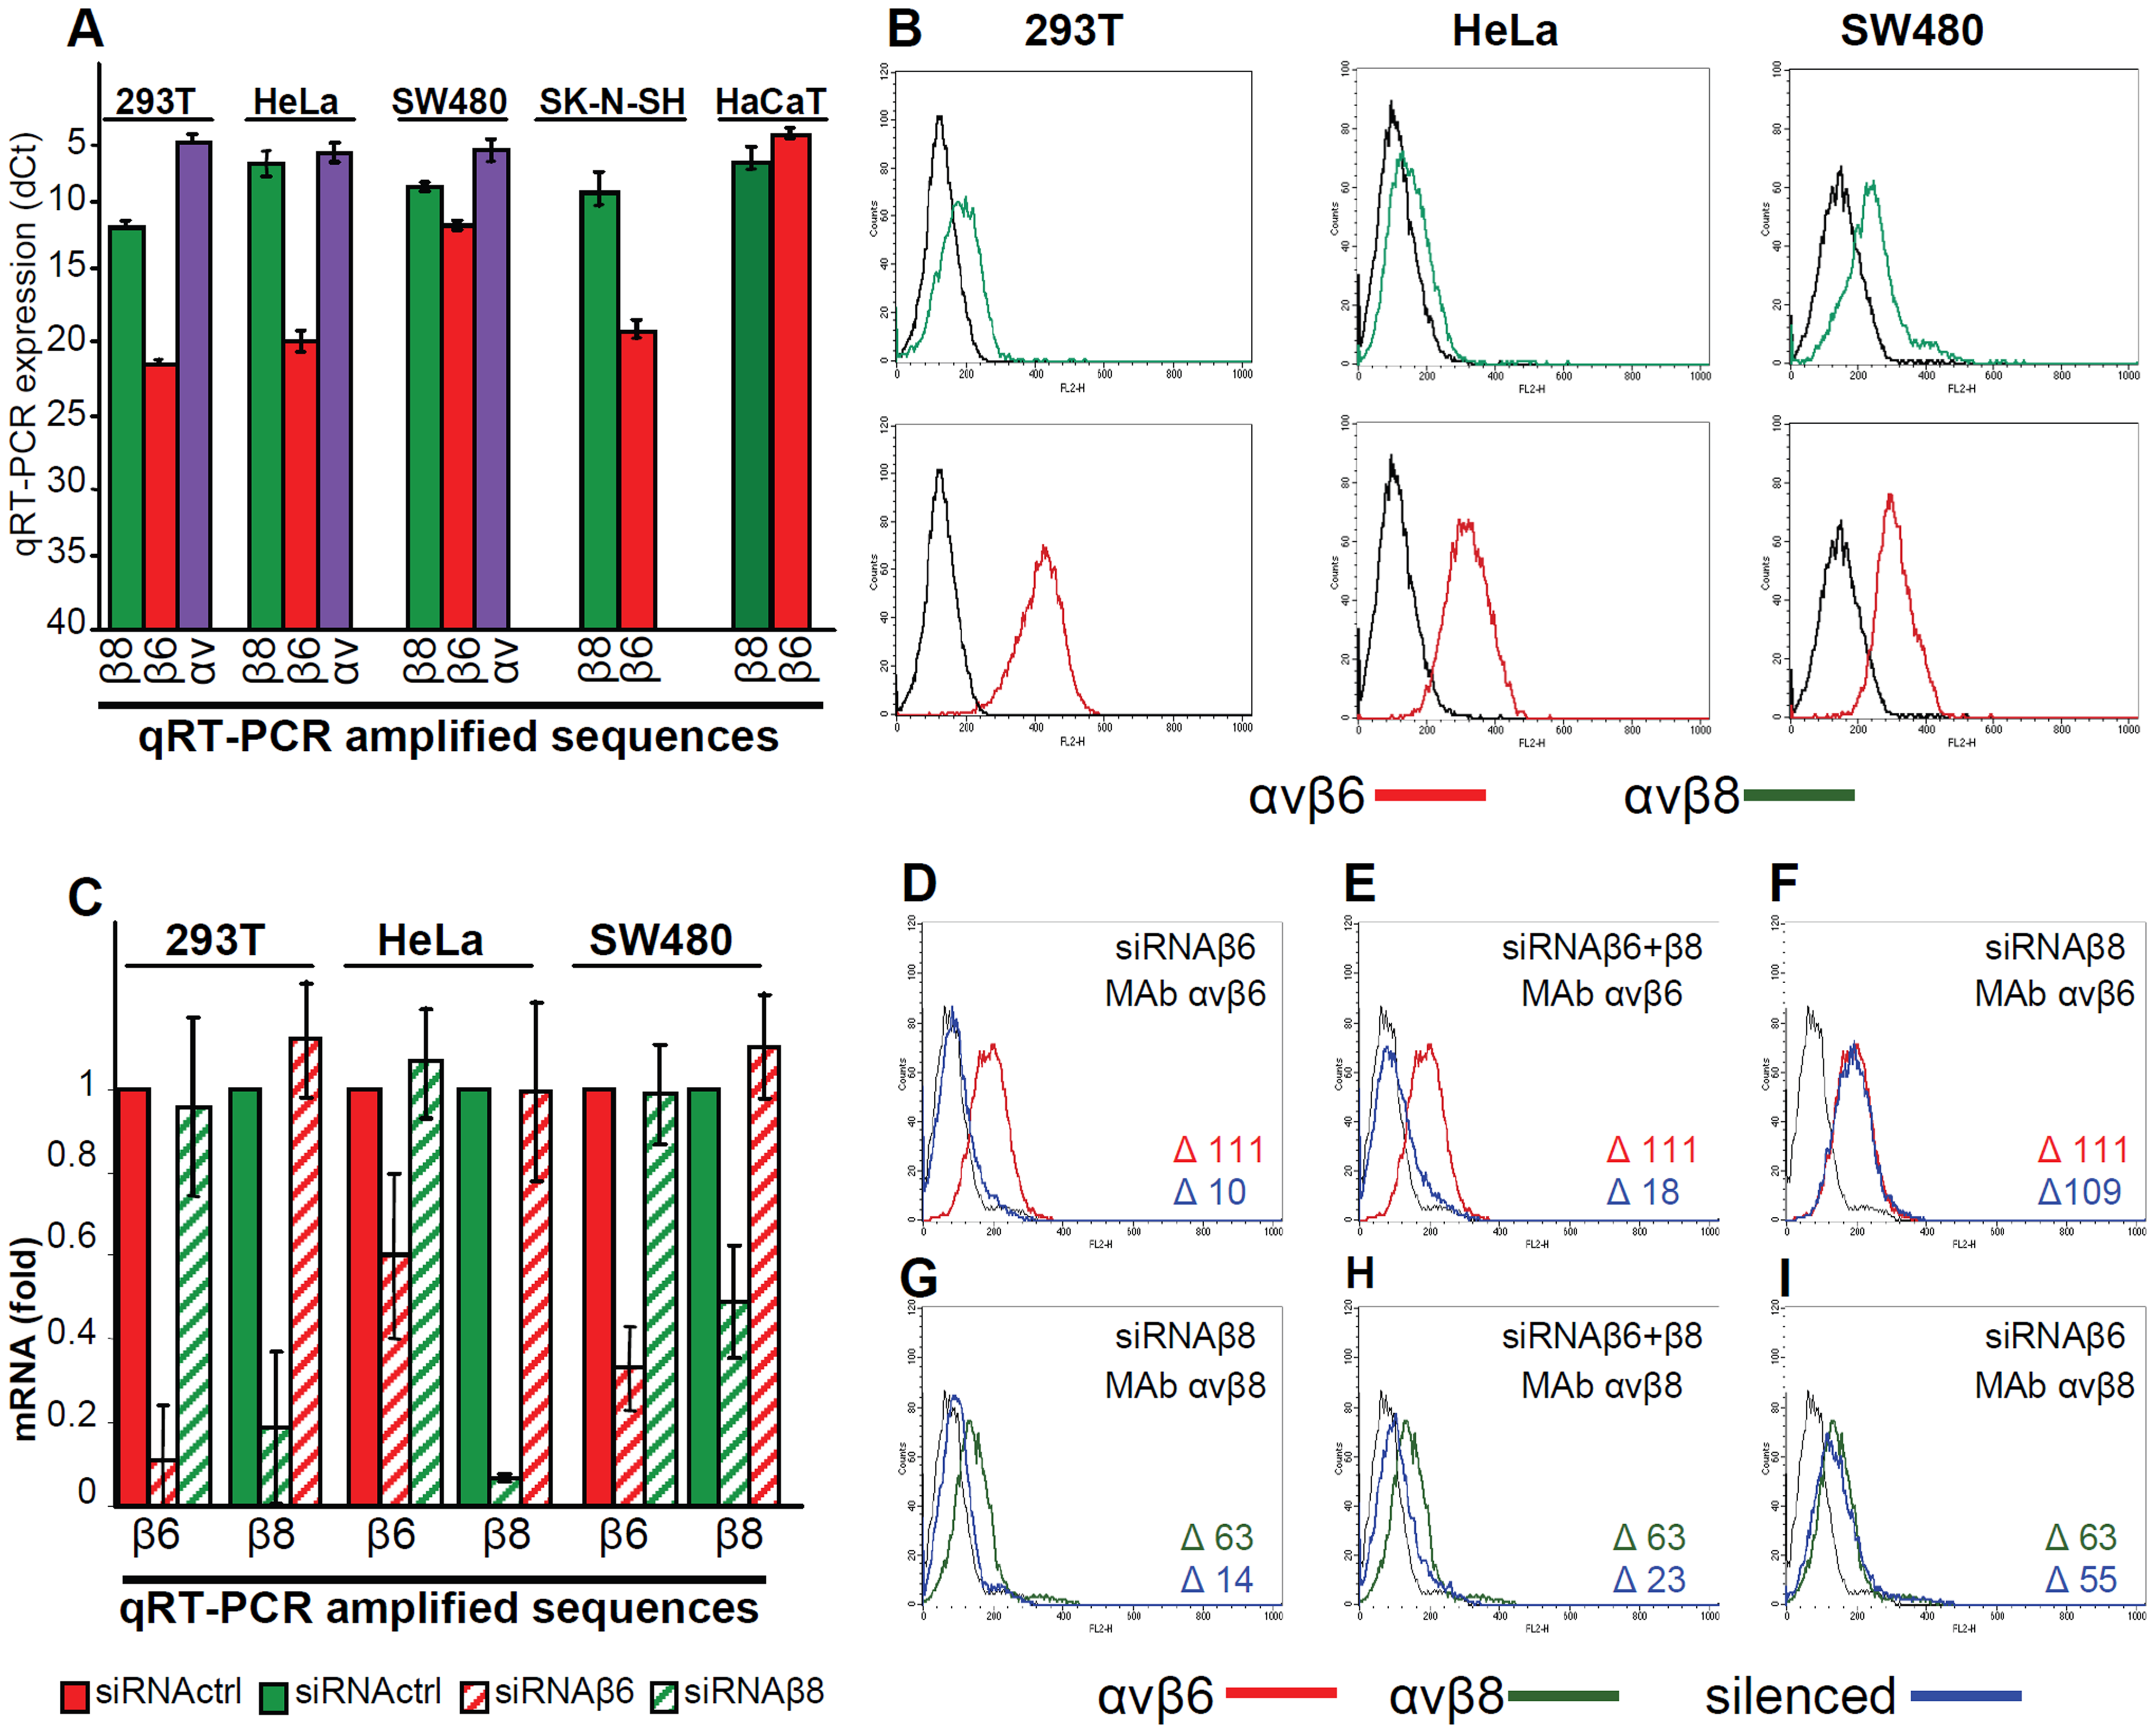 Expression of αvβ6- and αvβ8-integrins in epithelial 293T, HeLa, SW480, SK-N-SH and HaCaT cell lines and silencing by siRNA.